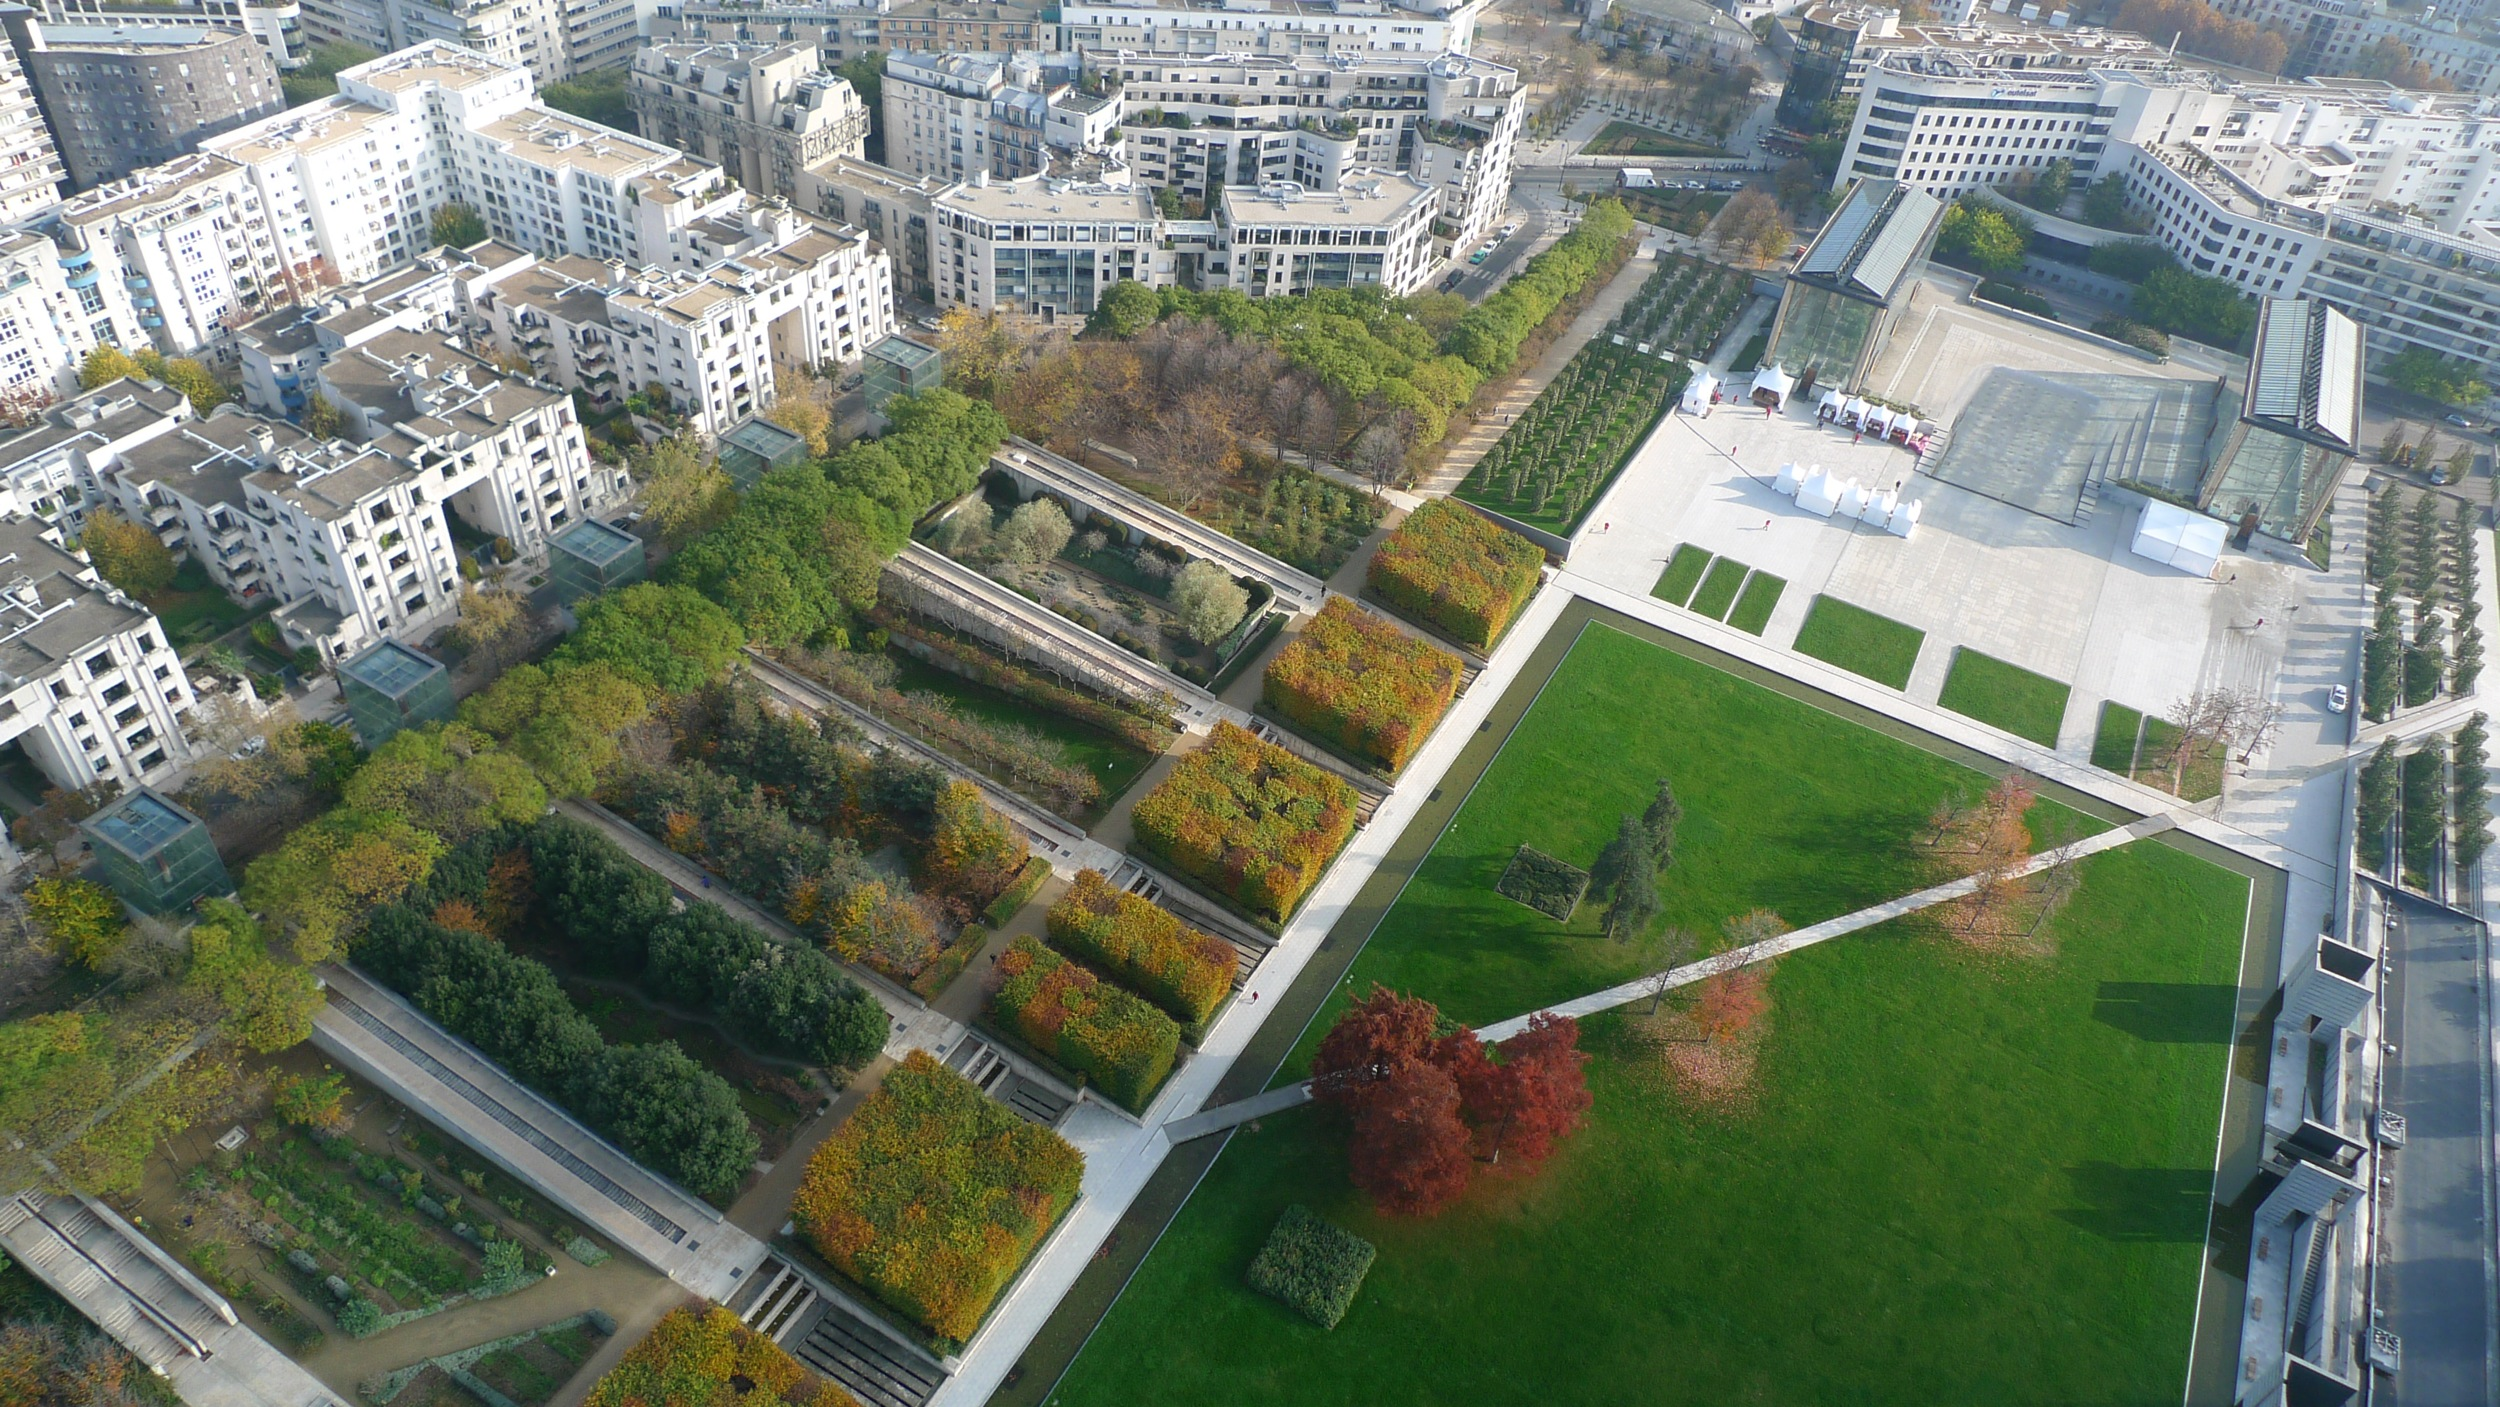 file aerial view of parc andr citro n november 15 wikimedia commons. Black Bedroom Furniture Sets. Home Design Ideas